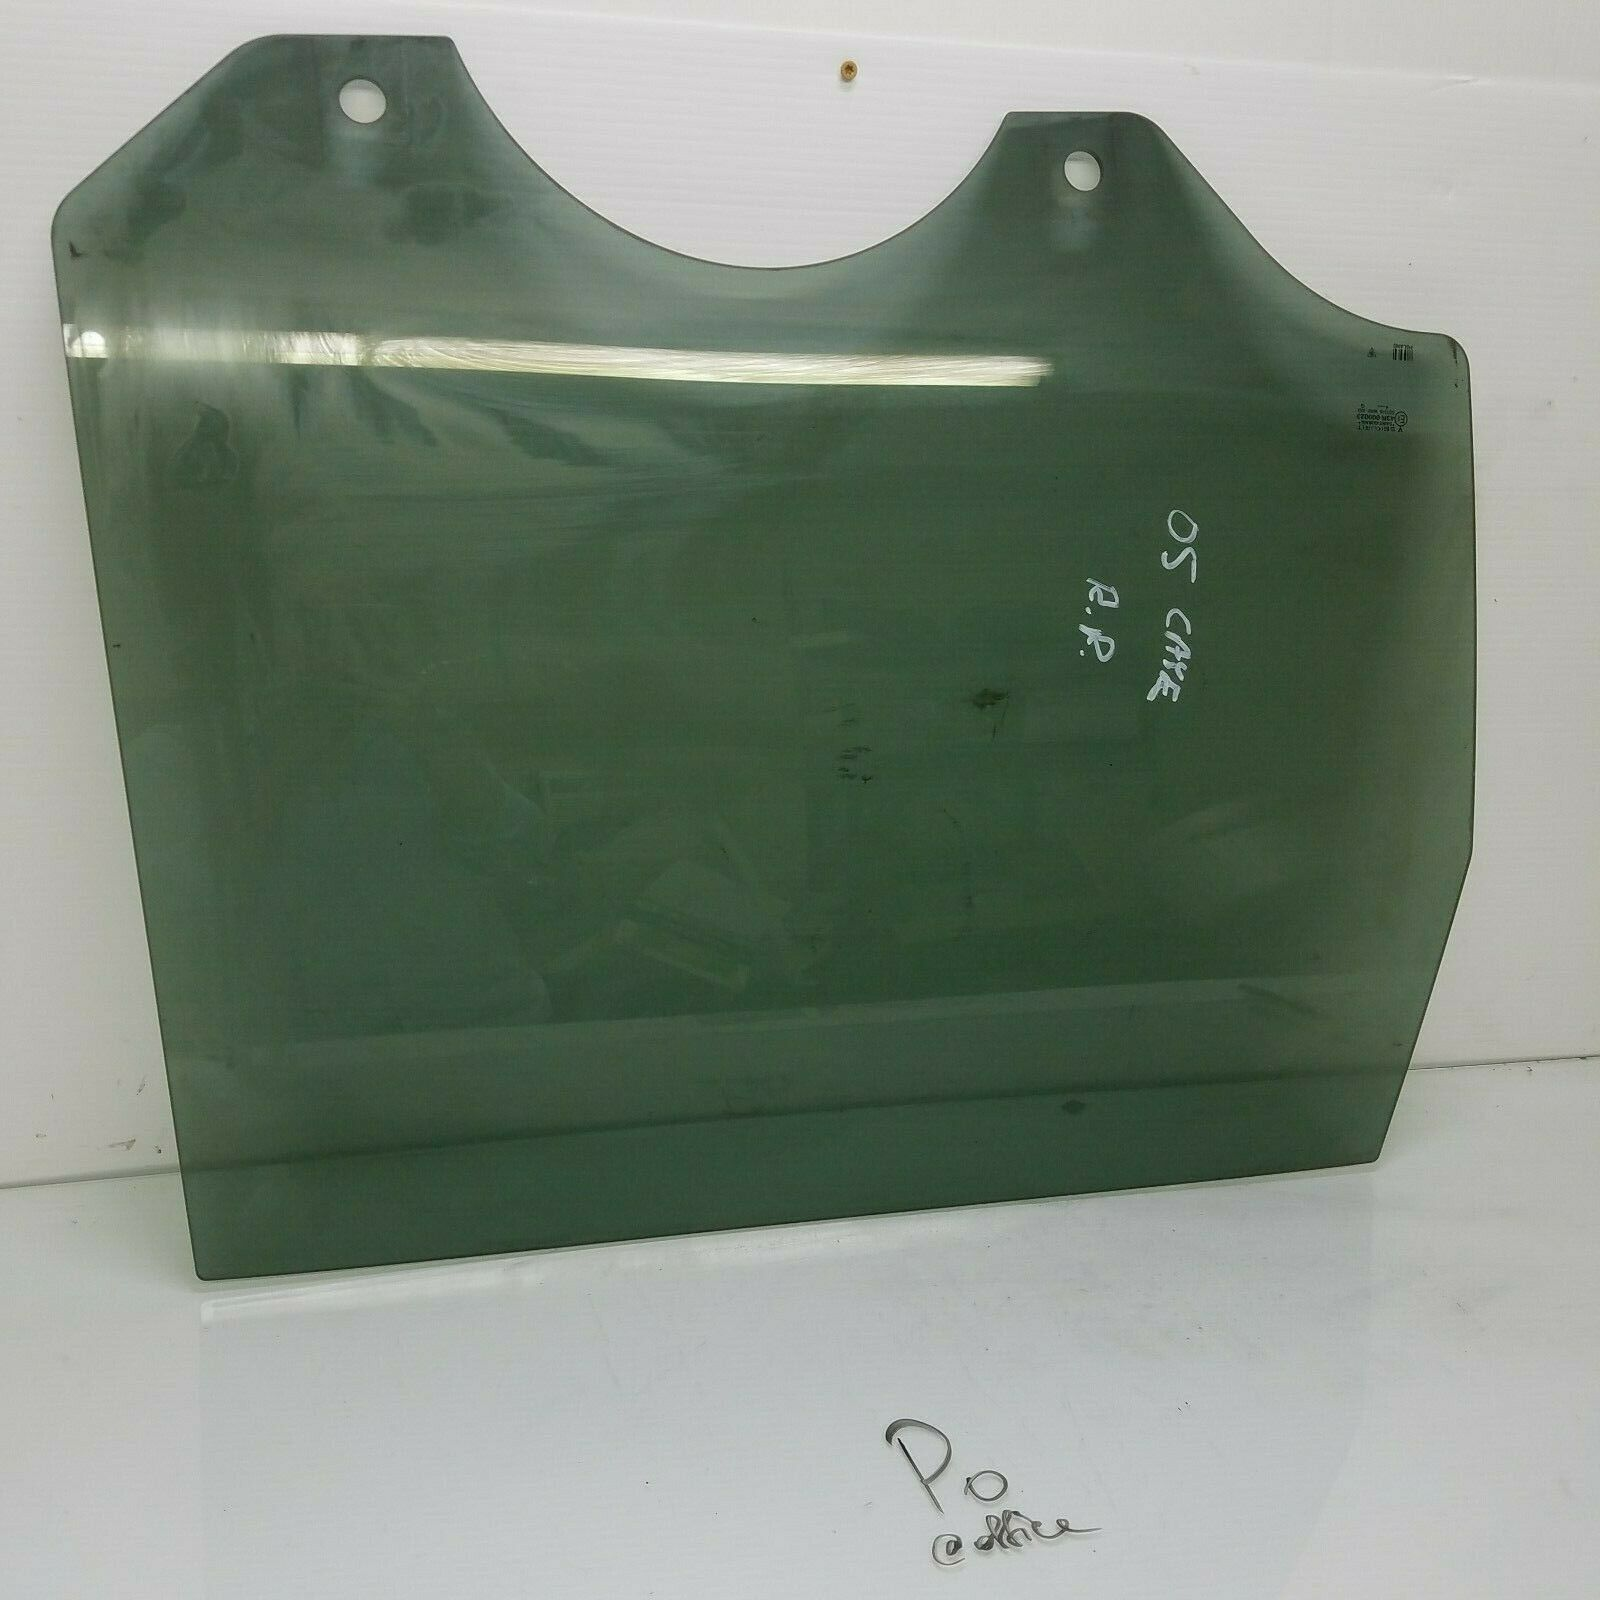 2003-2006 PORSCHE CAYENNE RIGHT REAR PASSENGER DOOR WINDOW GLASS OEM 43R000023  Does not apply Po Cay